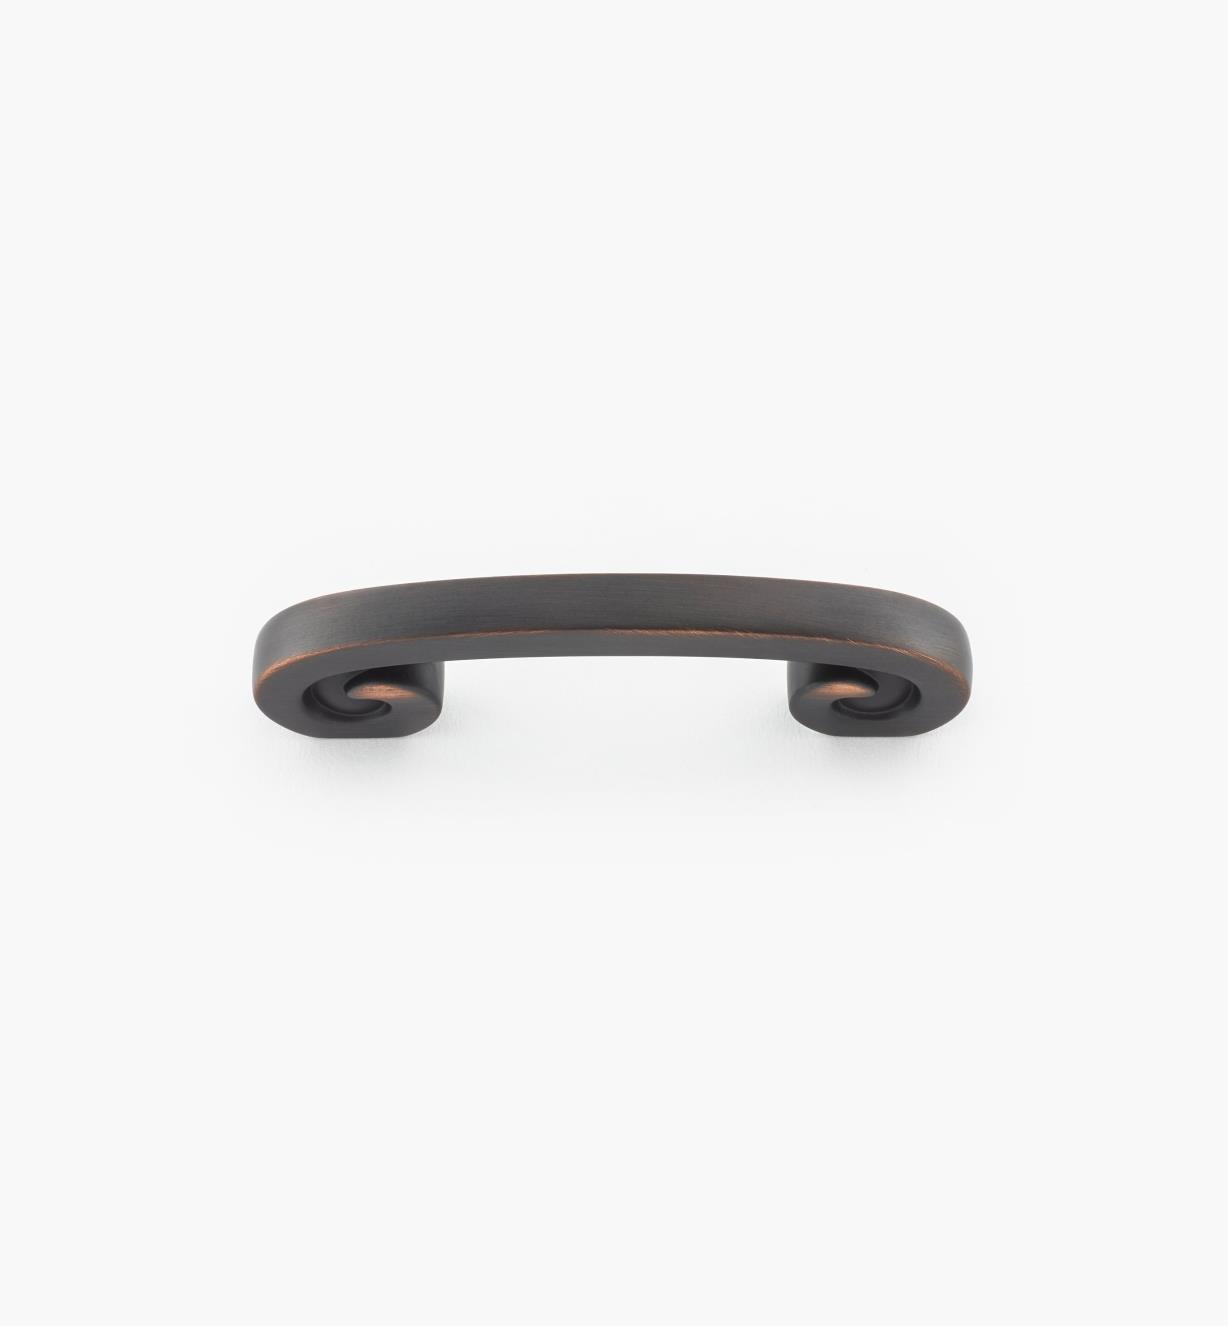 "02A1740 - 3"" Swirl'z Oil-Rubbed Bronze Handle"